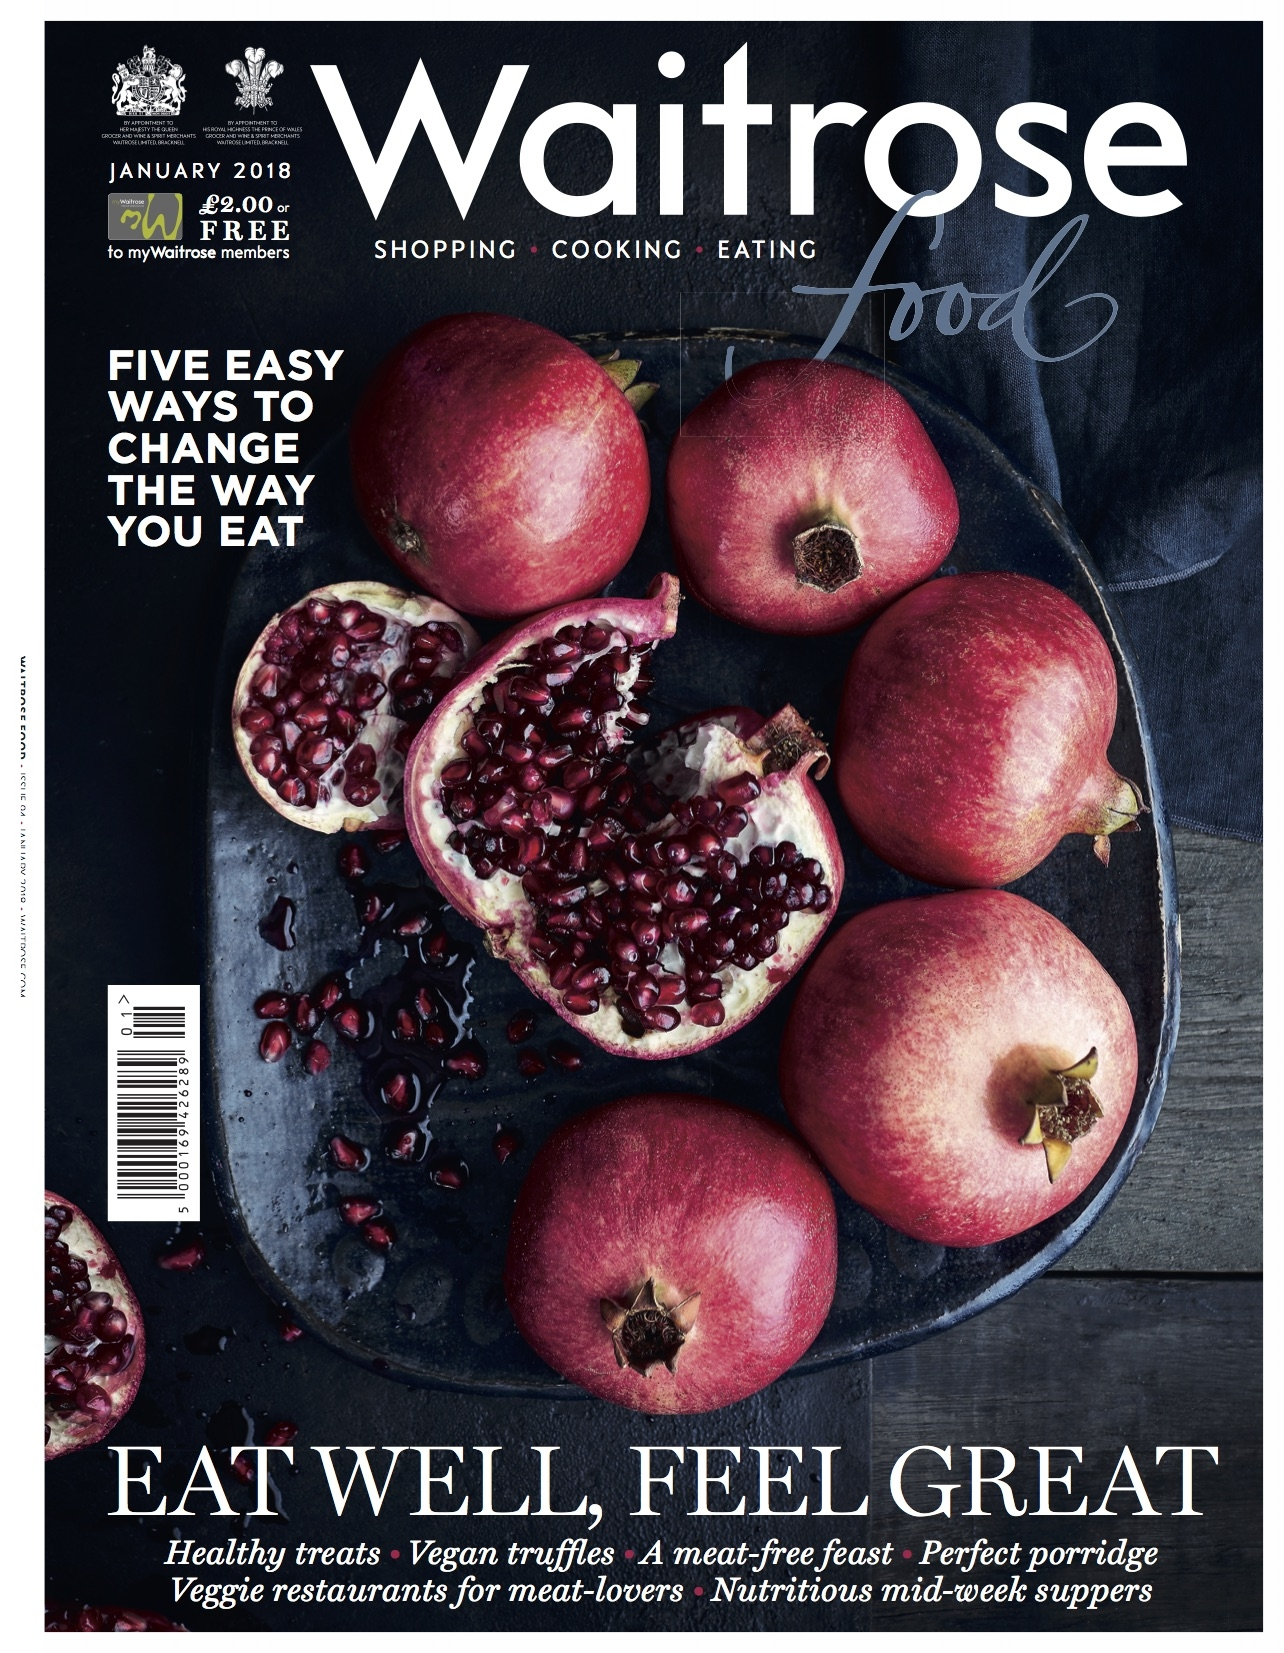 Waitrose Jan cover tear.jpg